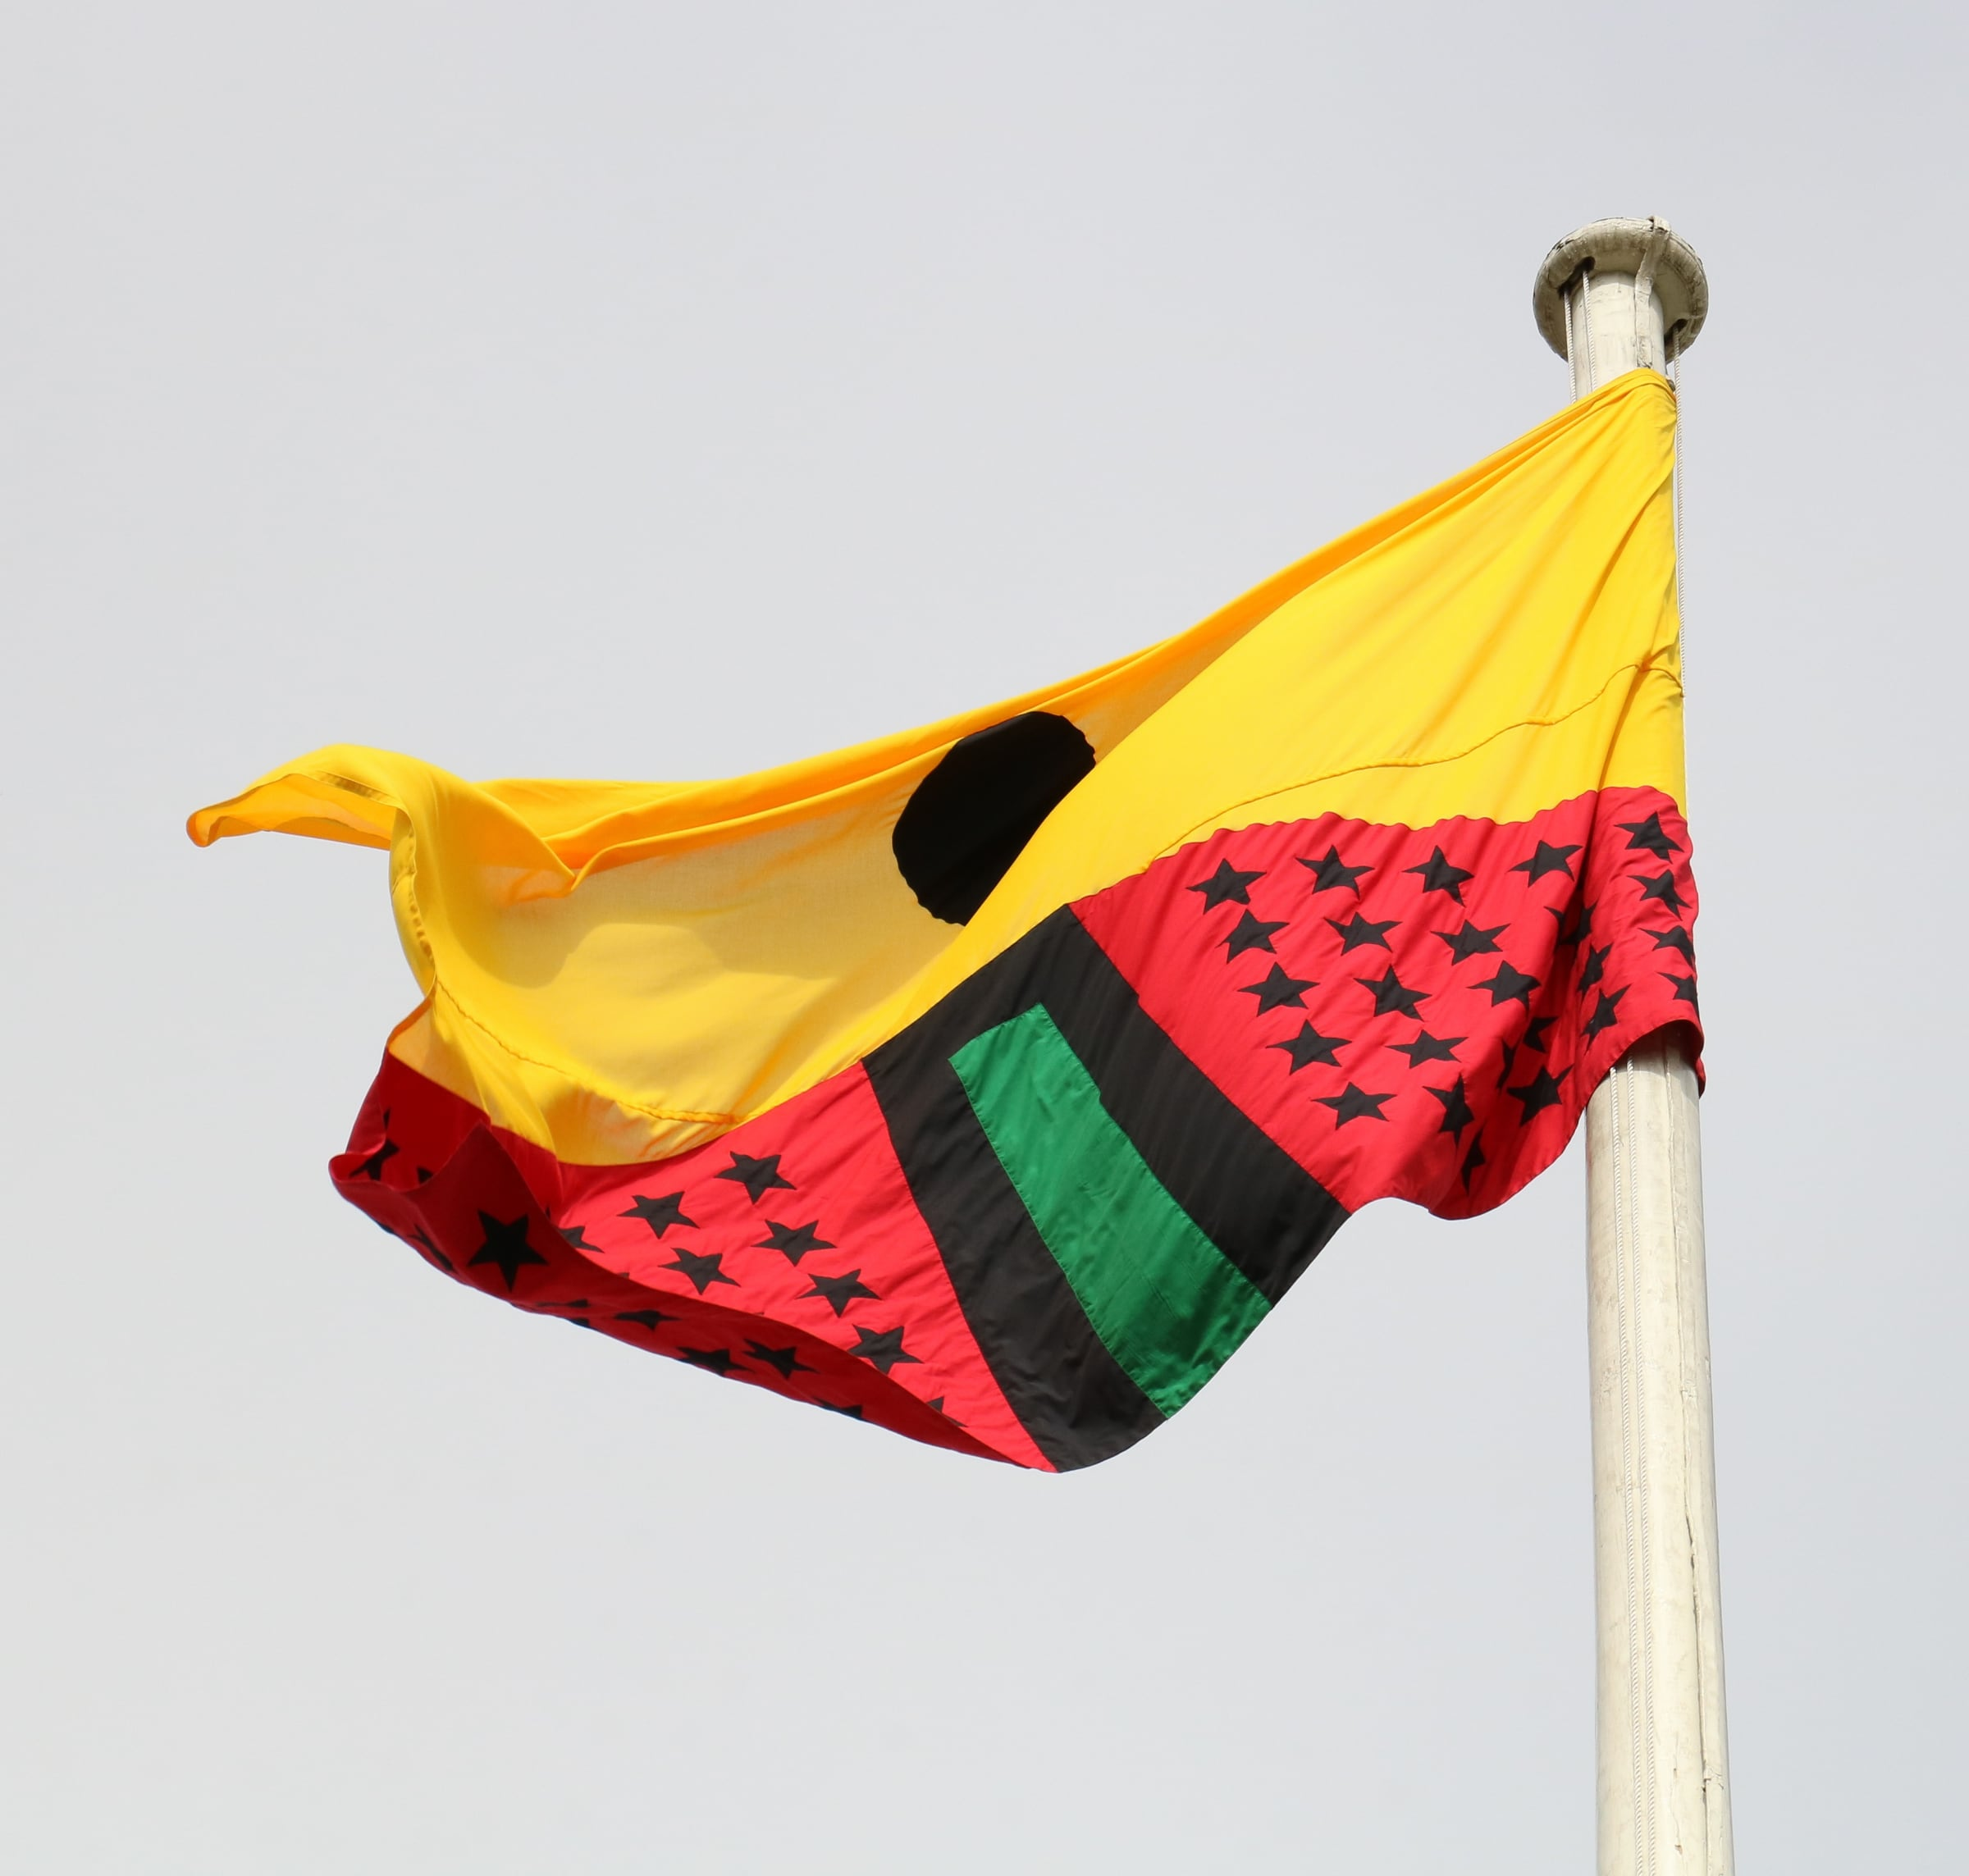 <span class=&#34;link fancybox-details-link&#34;><a href=&#34;/exhibitions/167/works/image2964/&#34;>View Detail Page</a></span><div class=&#34;artist&#34;><strong>Larry Achiampong</strong></div><div class=&#34;title&#34;><em>PAN AFRICAN FLAG FOR THE RELIC TRAVELLERS&#8217; ALLIANCE</em>, 2017</div><div class=&#34;medium&#34;>Appliqu&#233; Flag</div><p>200 x 300 cm</p><p>Courtesy of the artist. Commissioned by Somerset House.</p>